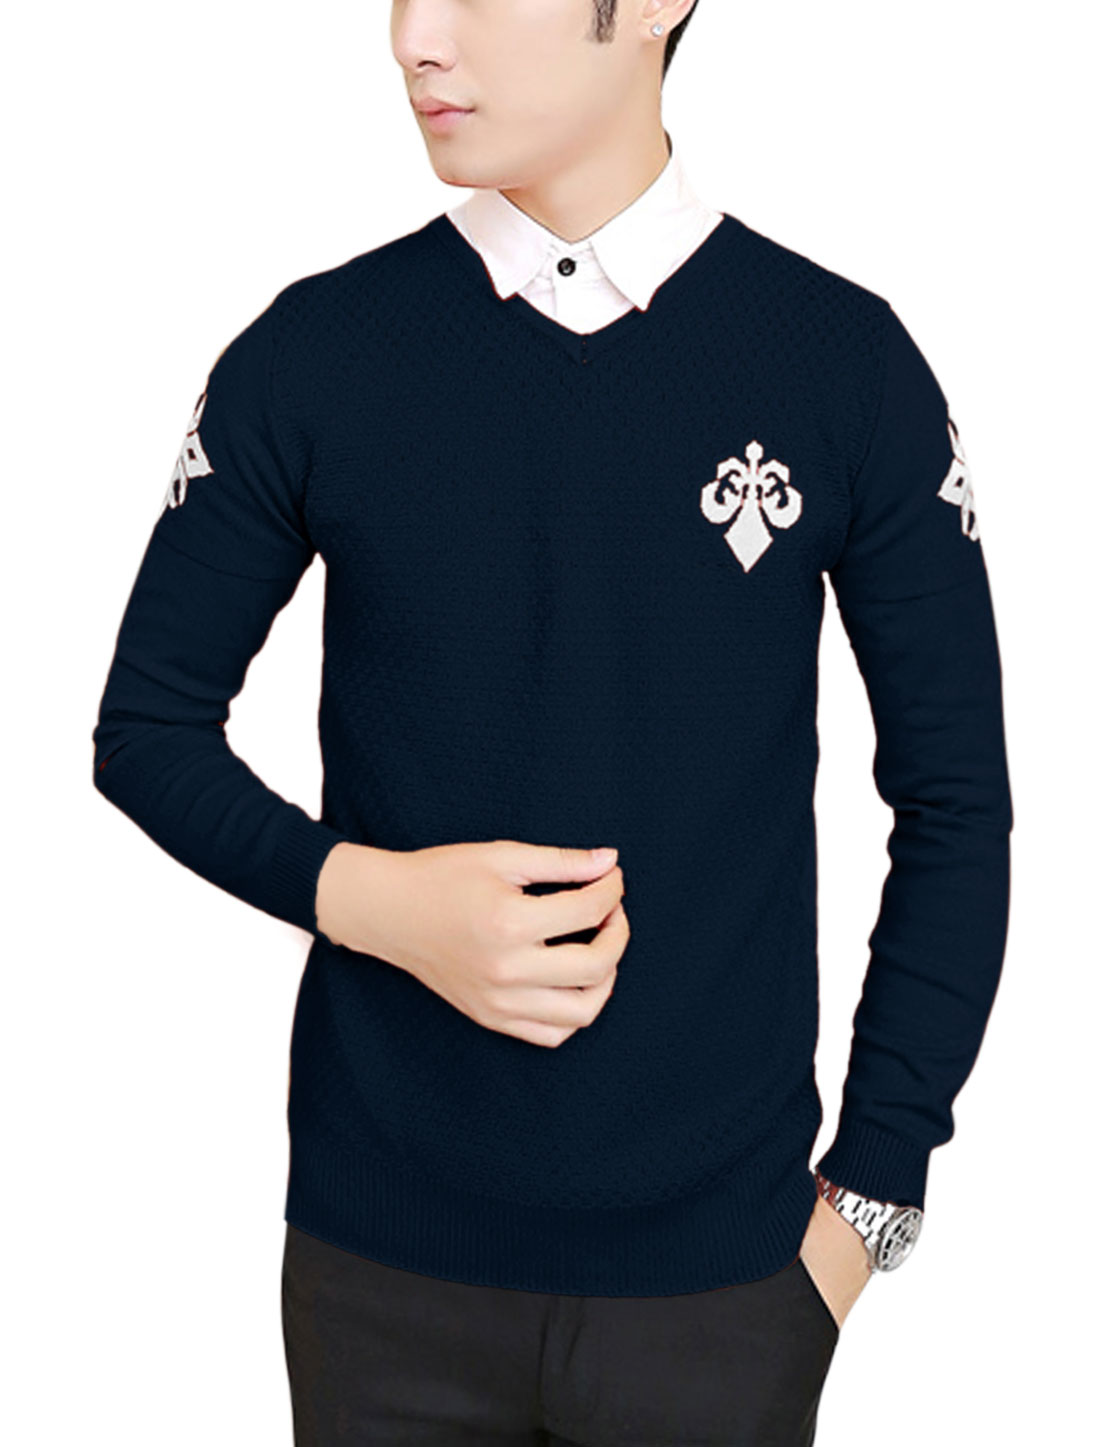 Men Pullover V Neck Letters Pattern Cozy Fit Knit Shirt Navy Blue M